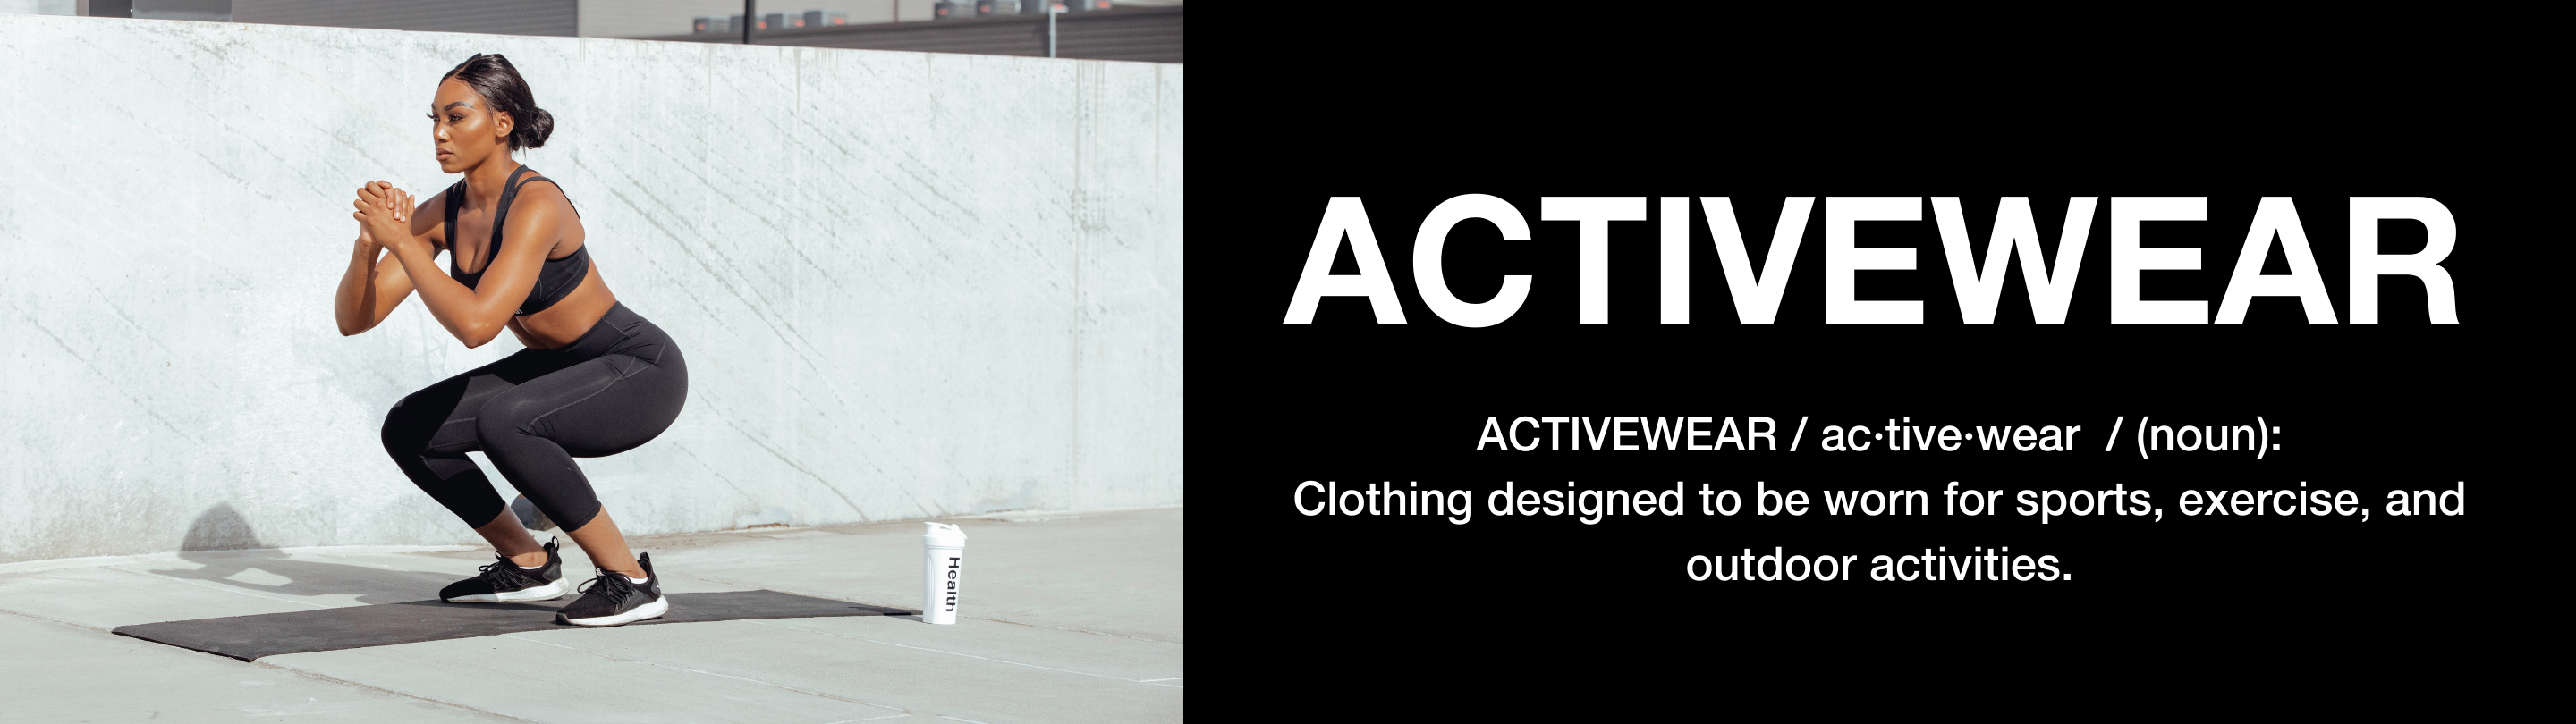 Health Activewear - clothing designed to be worn for sports, exercise, and outdoor activities.